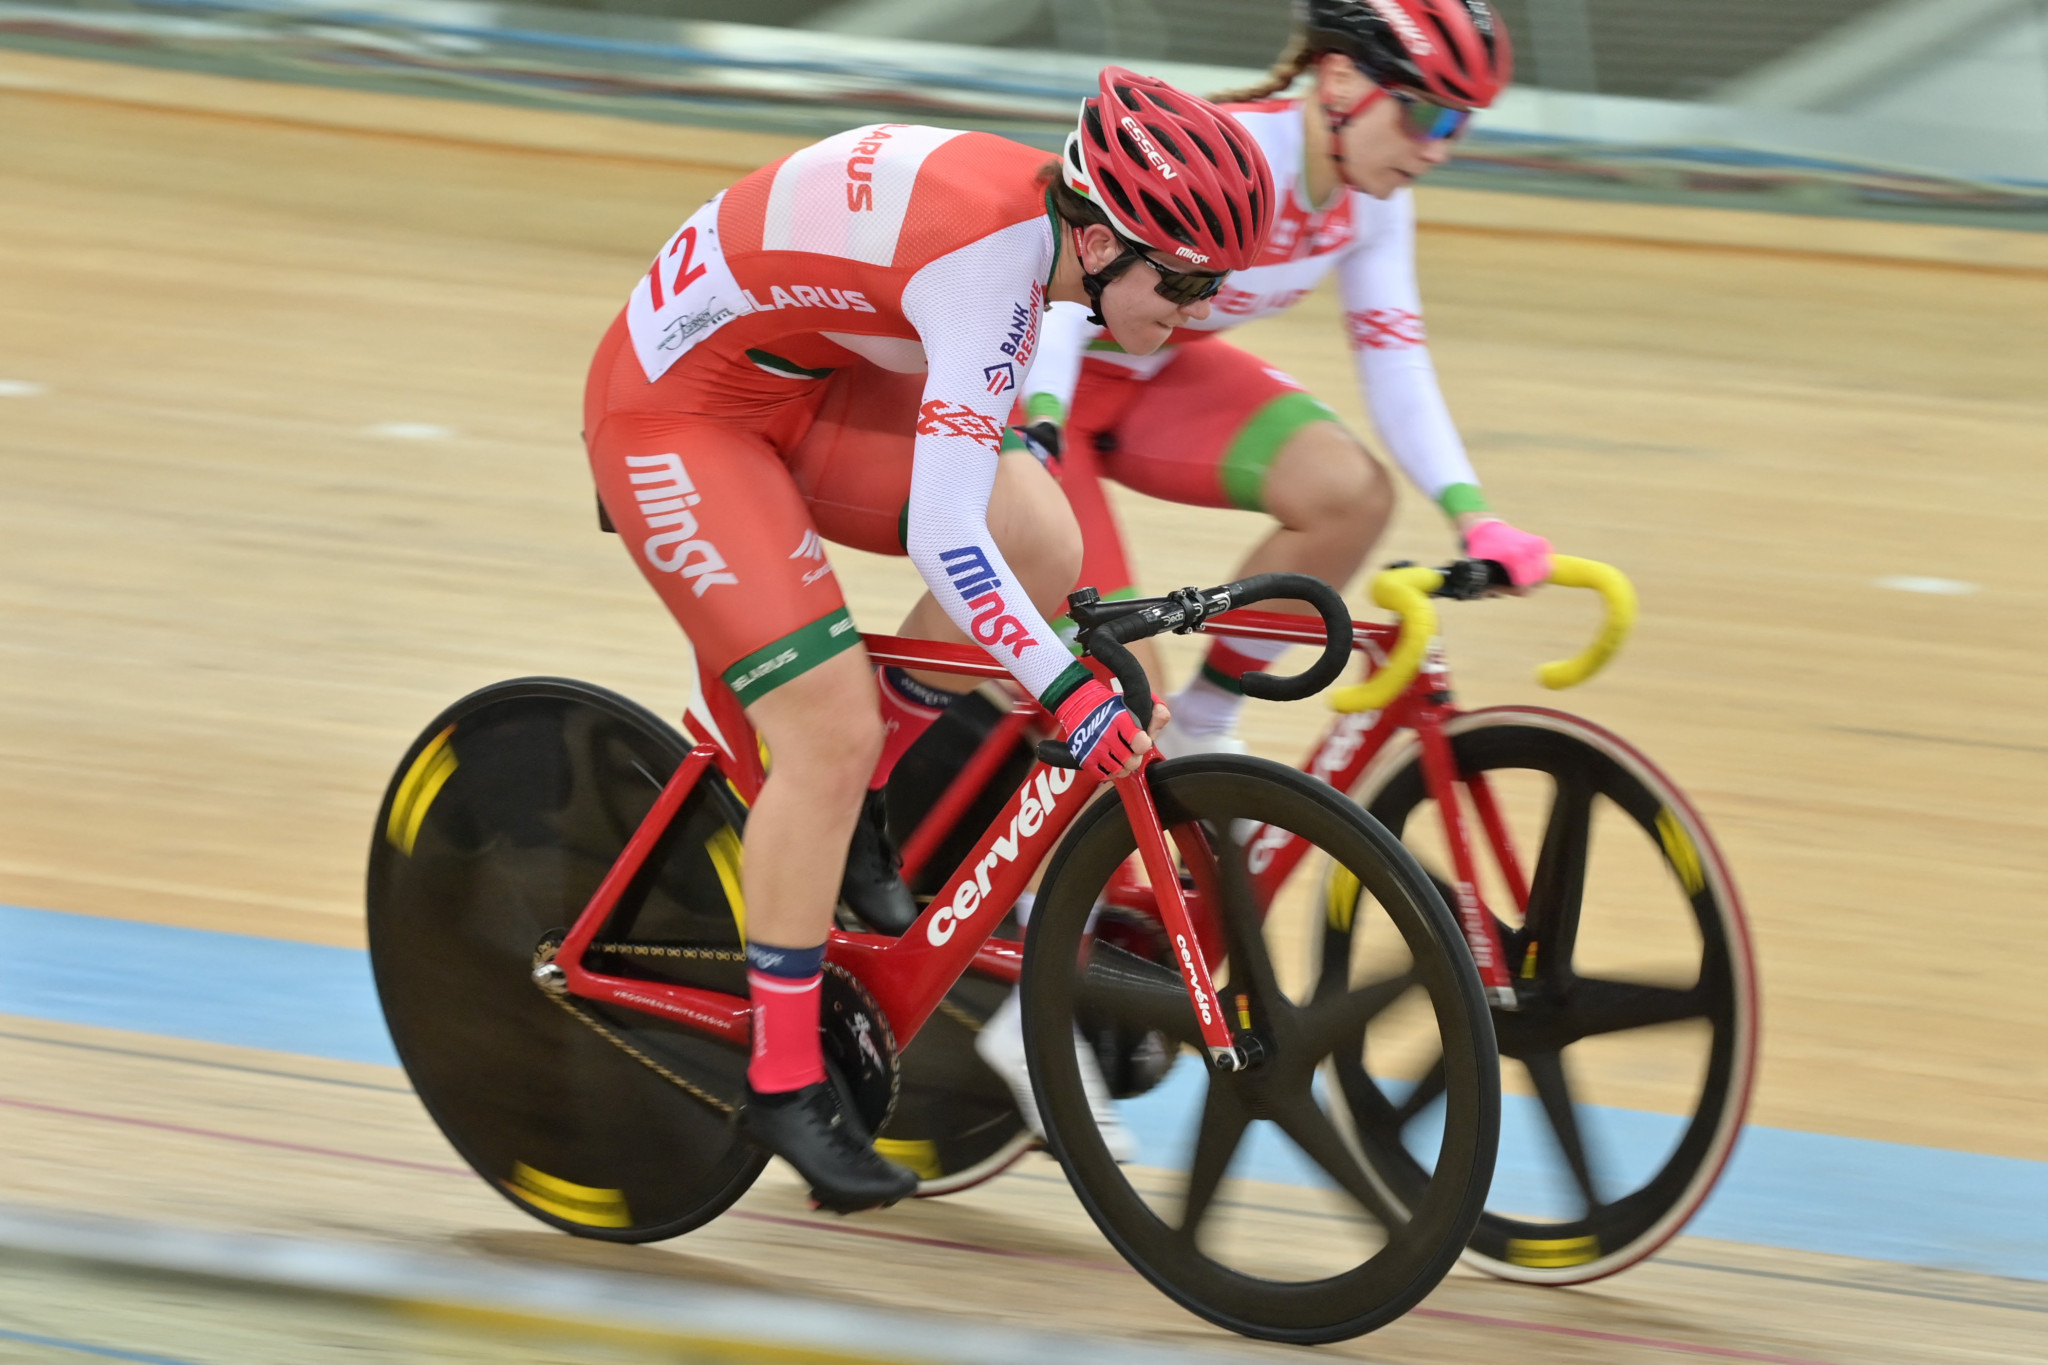 UEC to make European Track Cycling Championships decision on Thursday amid renewed pressure to strip Belarus of event